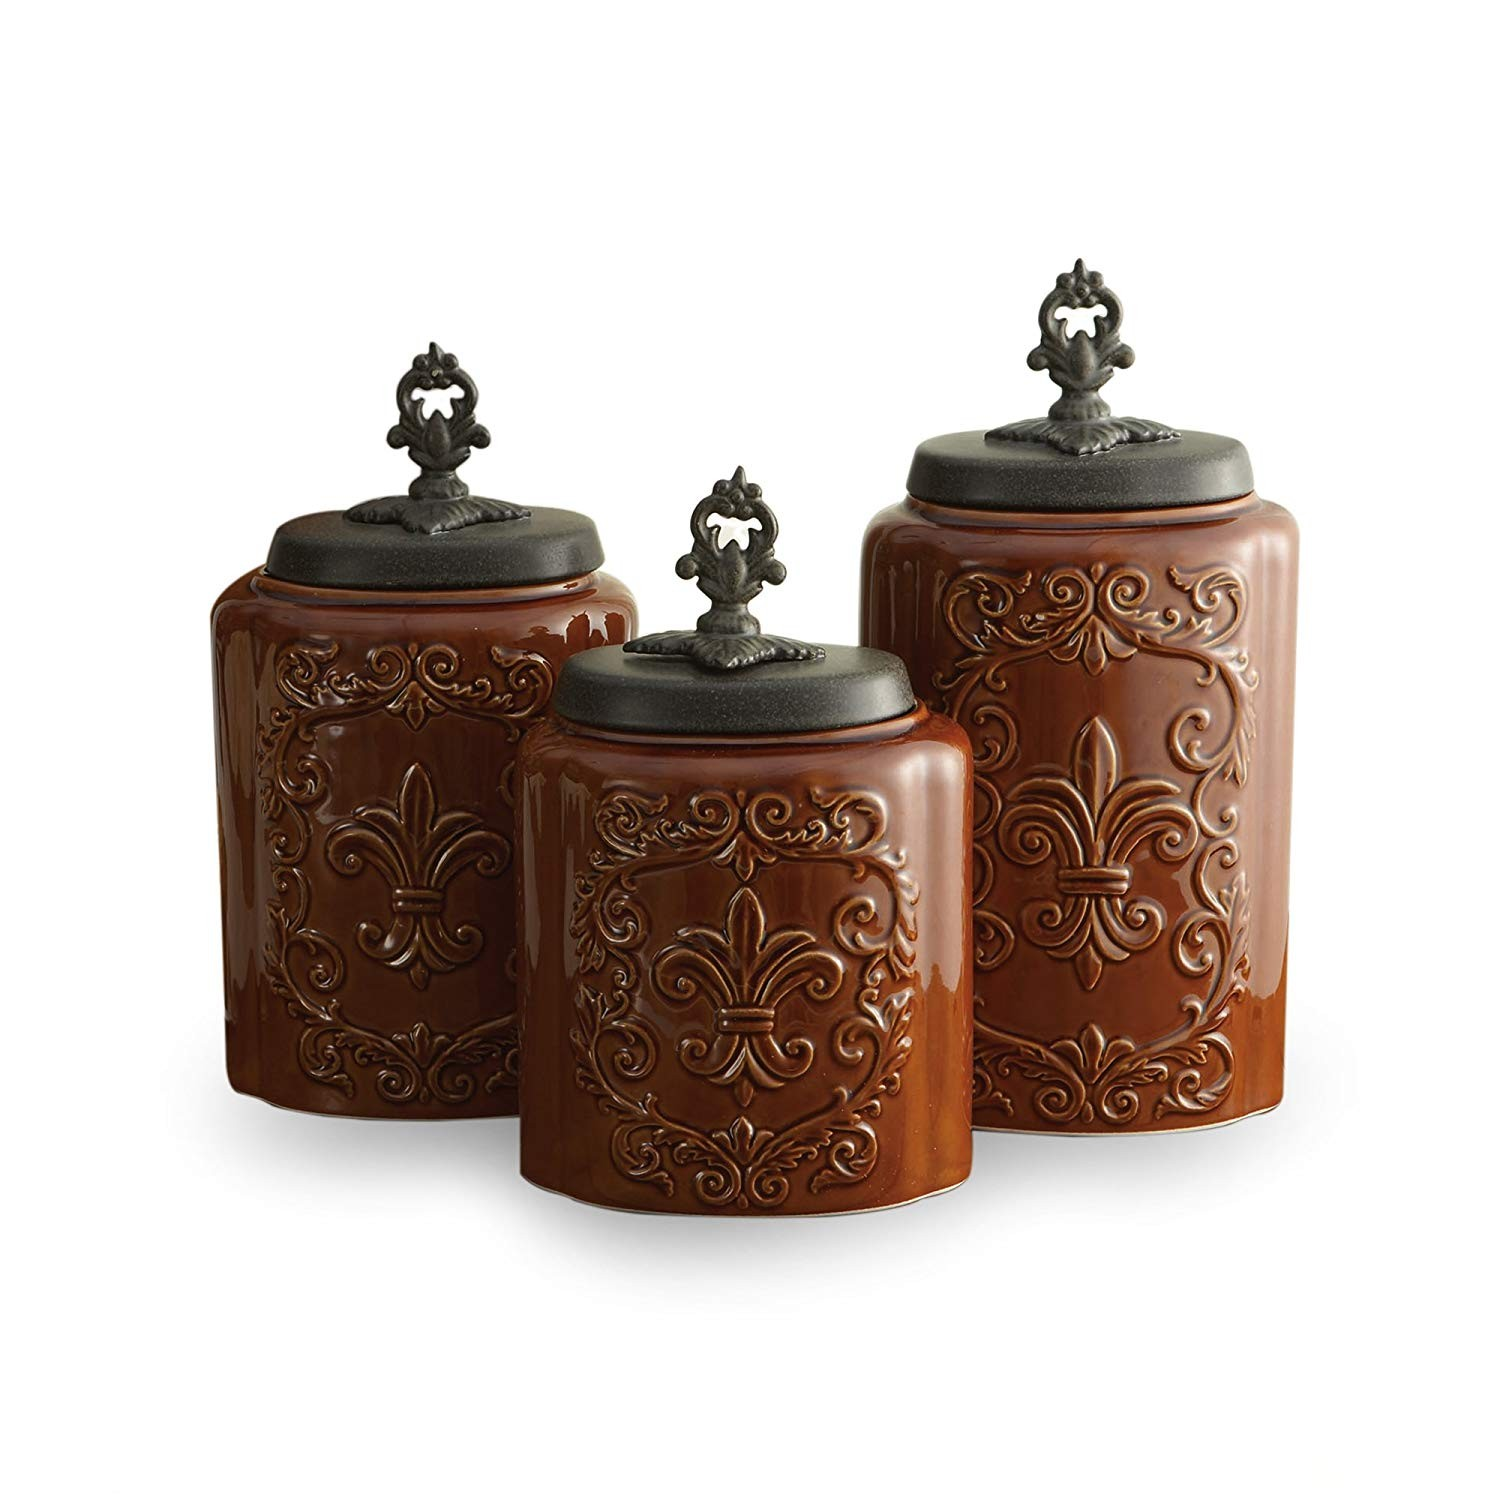 American Atelier Canisters, Brown Antique, Set of 3